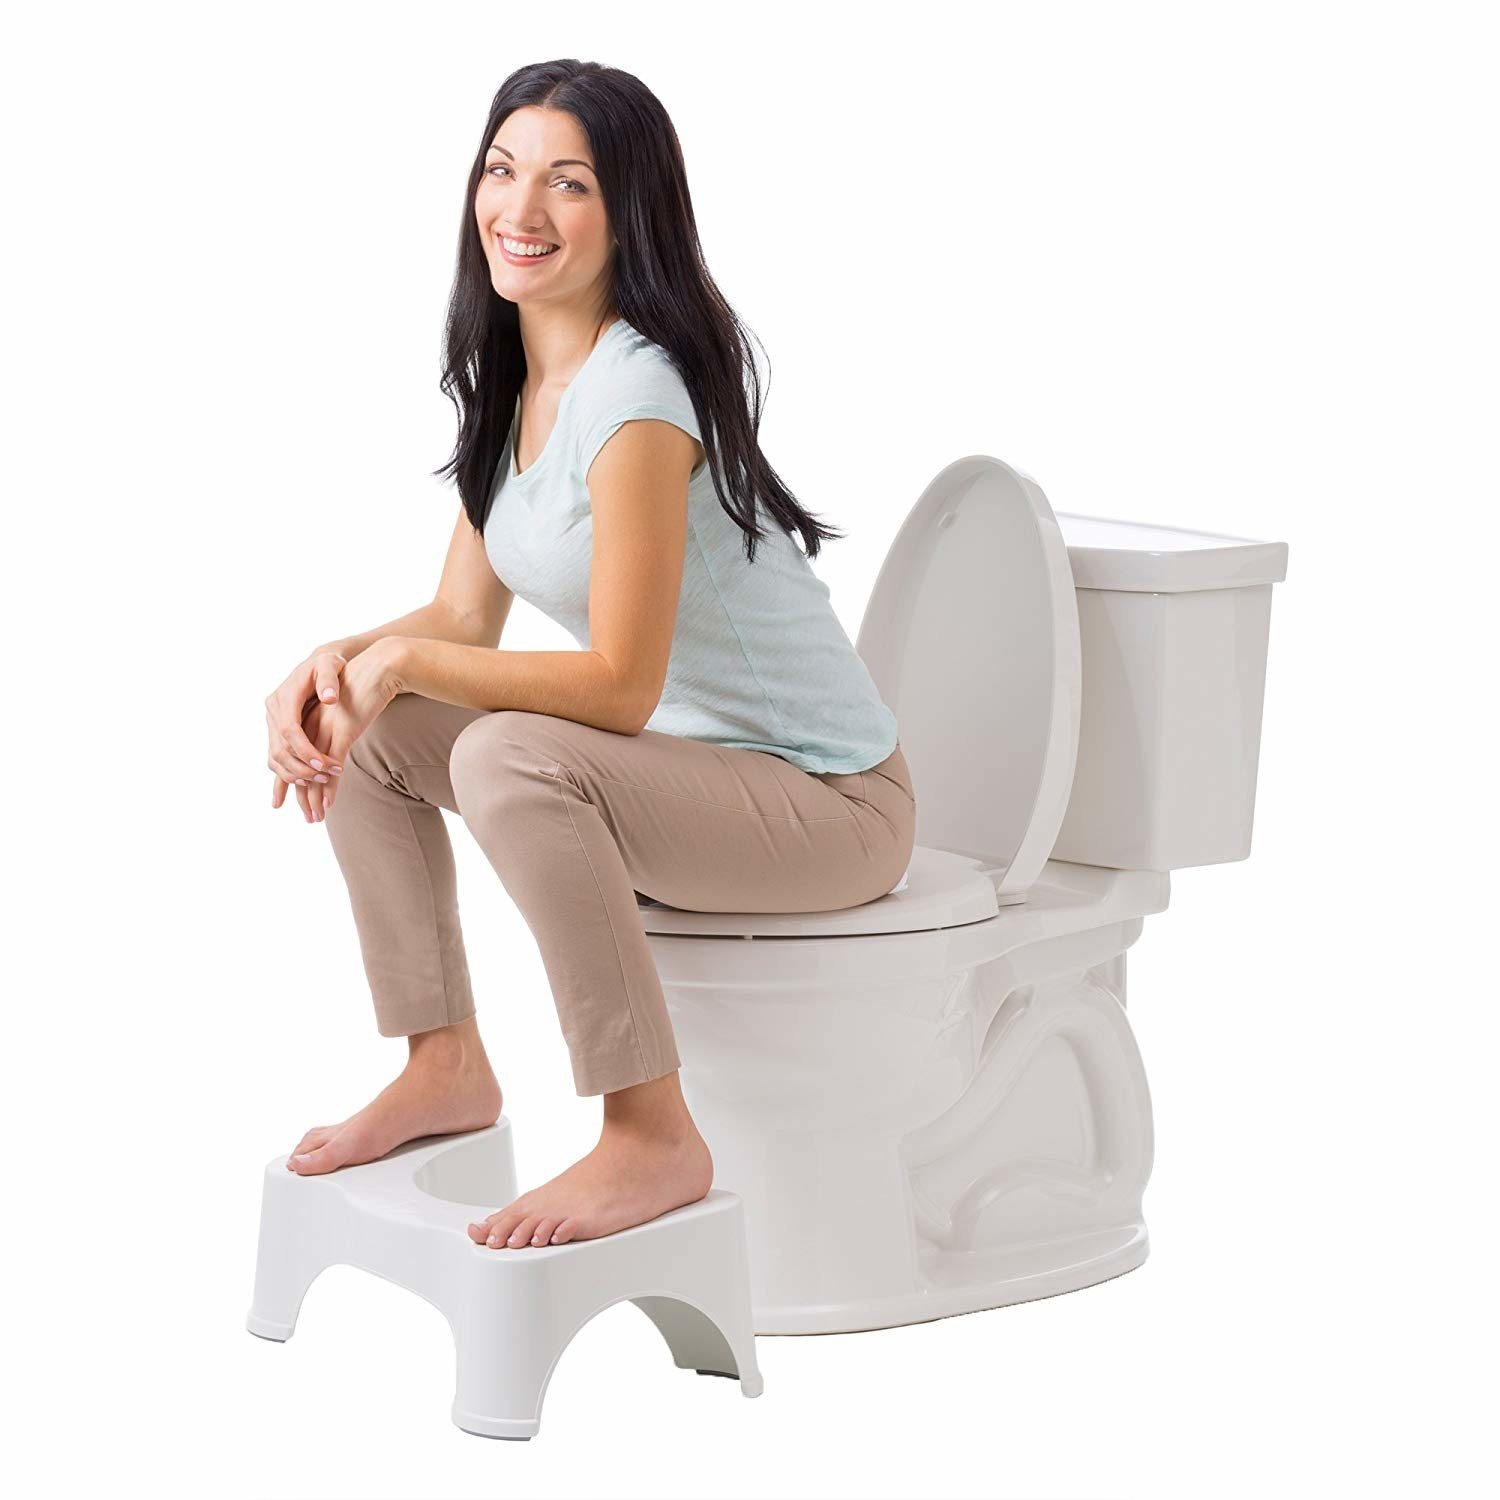 Fully clothed model sits on toilet with their feet on the stool, raising their knees above their hips